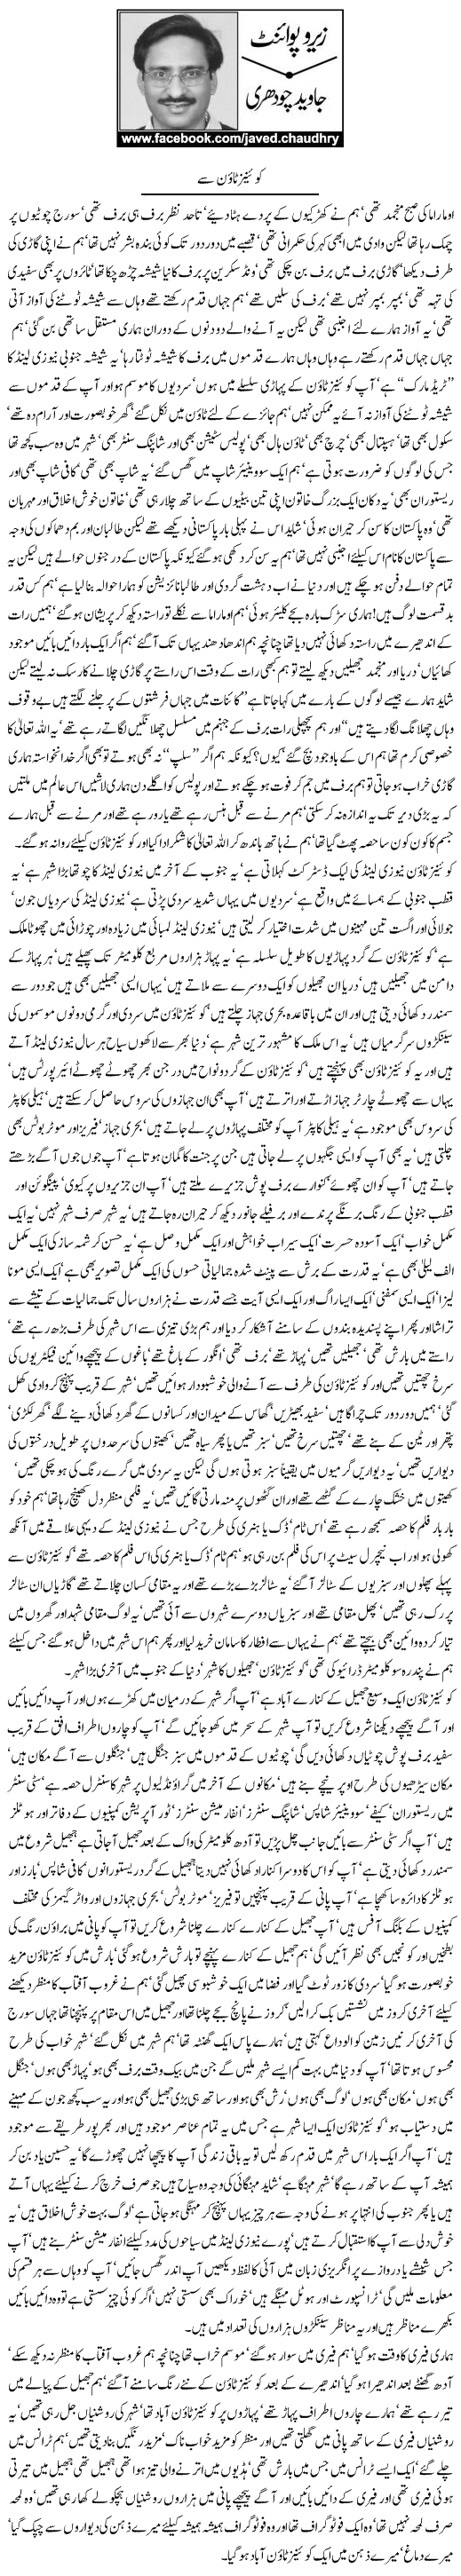 Javed Chaudhry Column | Queens Town Say | Zero Point